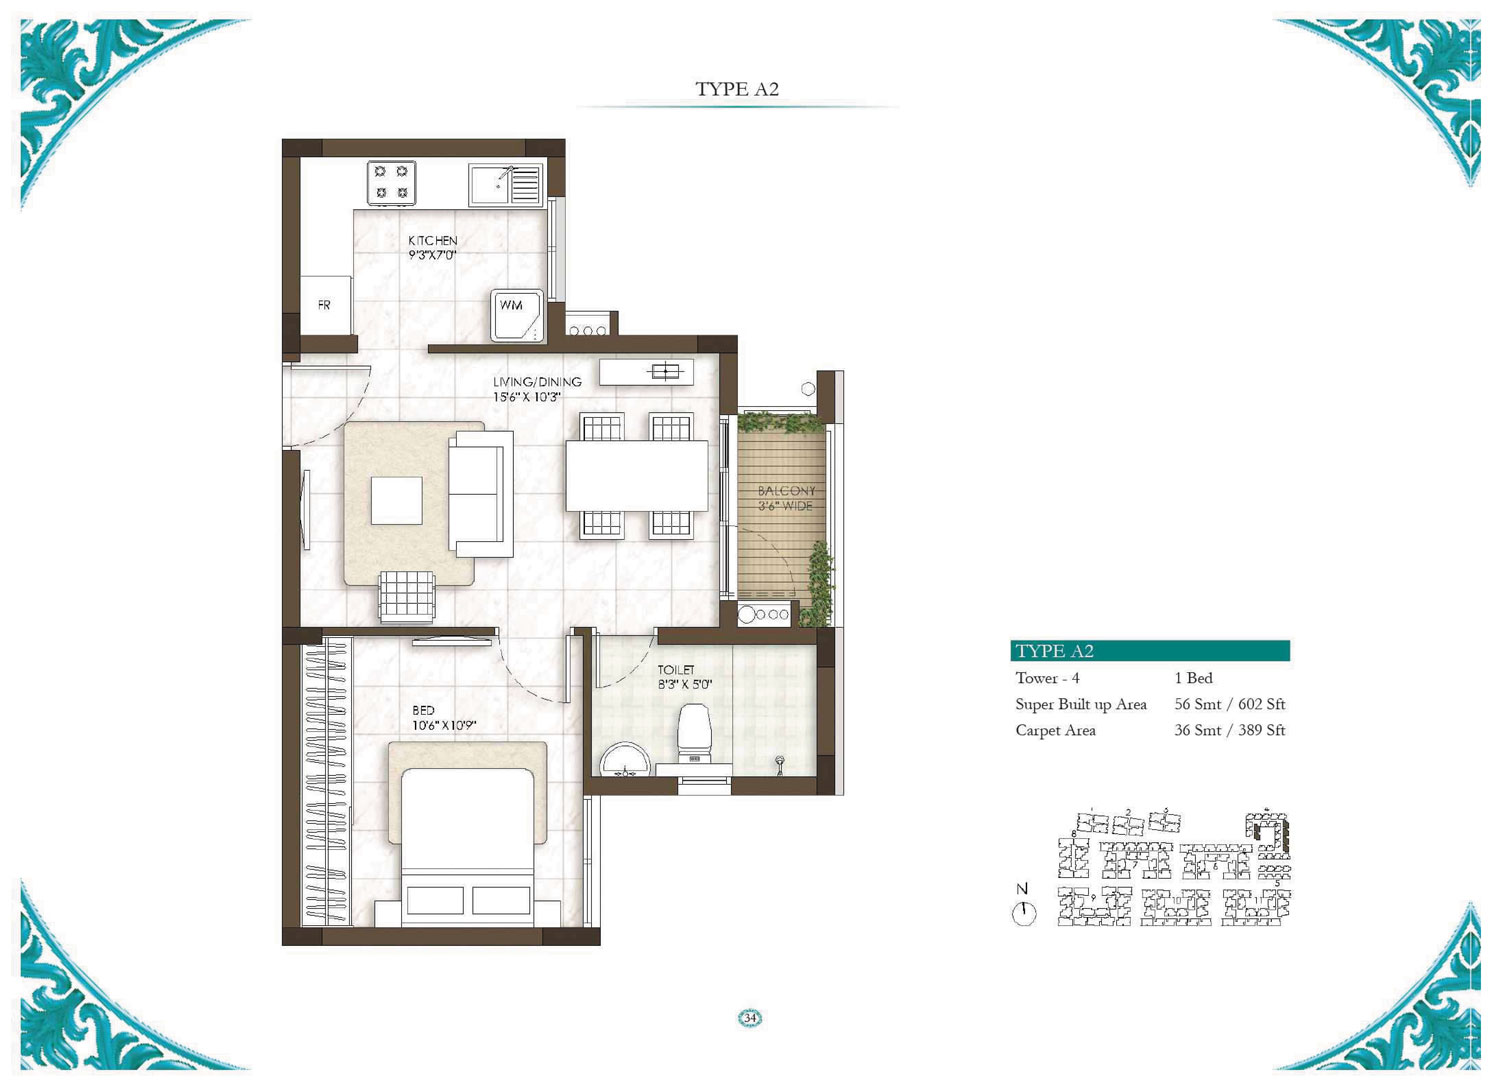 Type A2 - 1 Bed - 602 Sq Ft